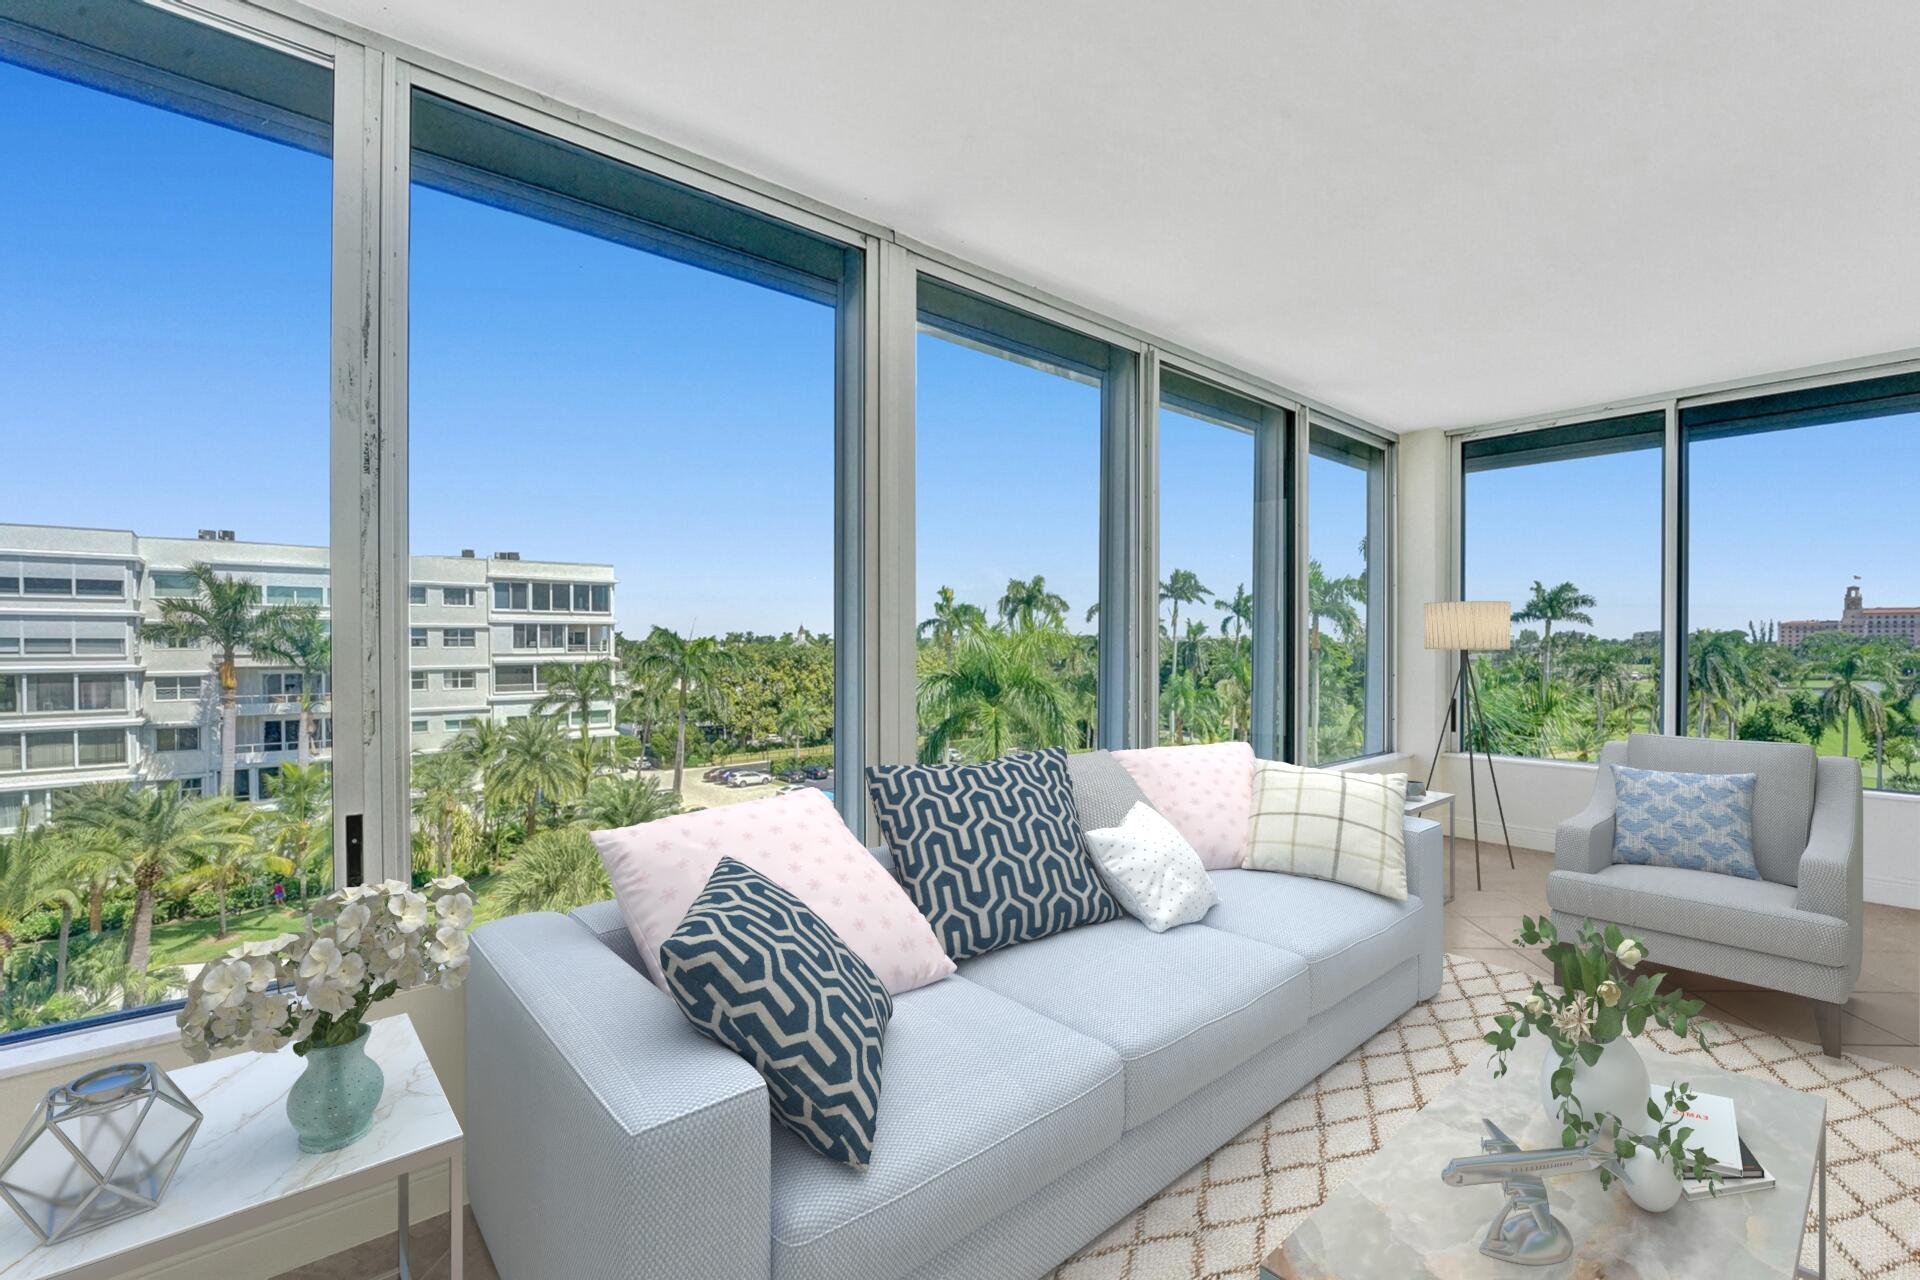 Beautifully appointed high floor 1 BR 1 BA has been tastefully reimagined with beautiful built ins and tons of closet space. This rare jewel affords elegance and utility. In unit washer/dryer and lovely treetop views enhance this very unique offering. Move-in perfection!